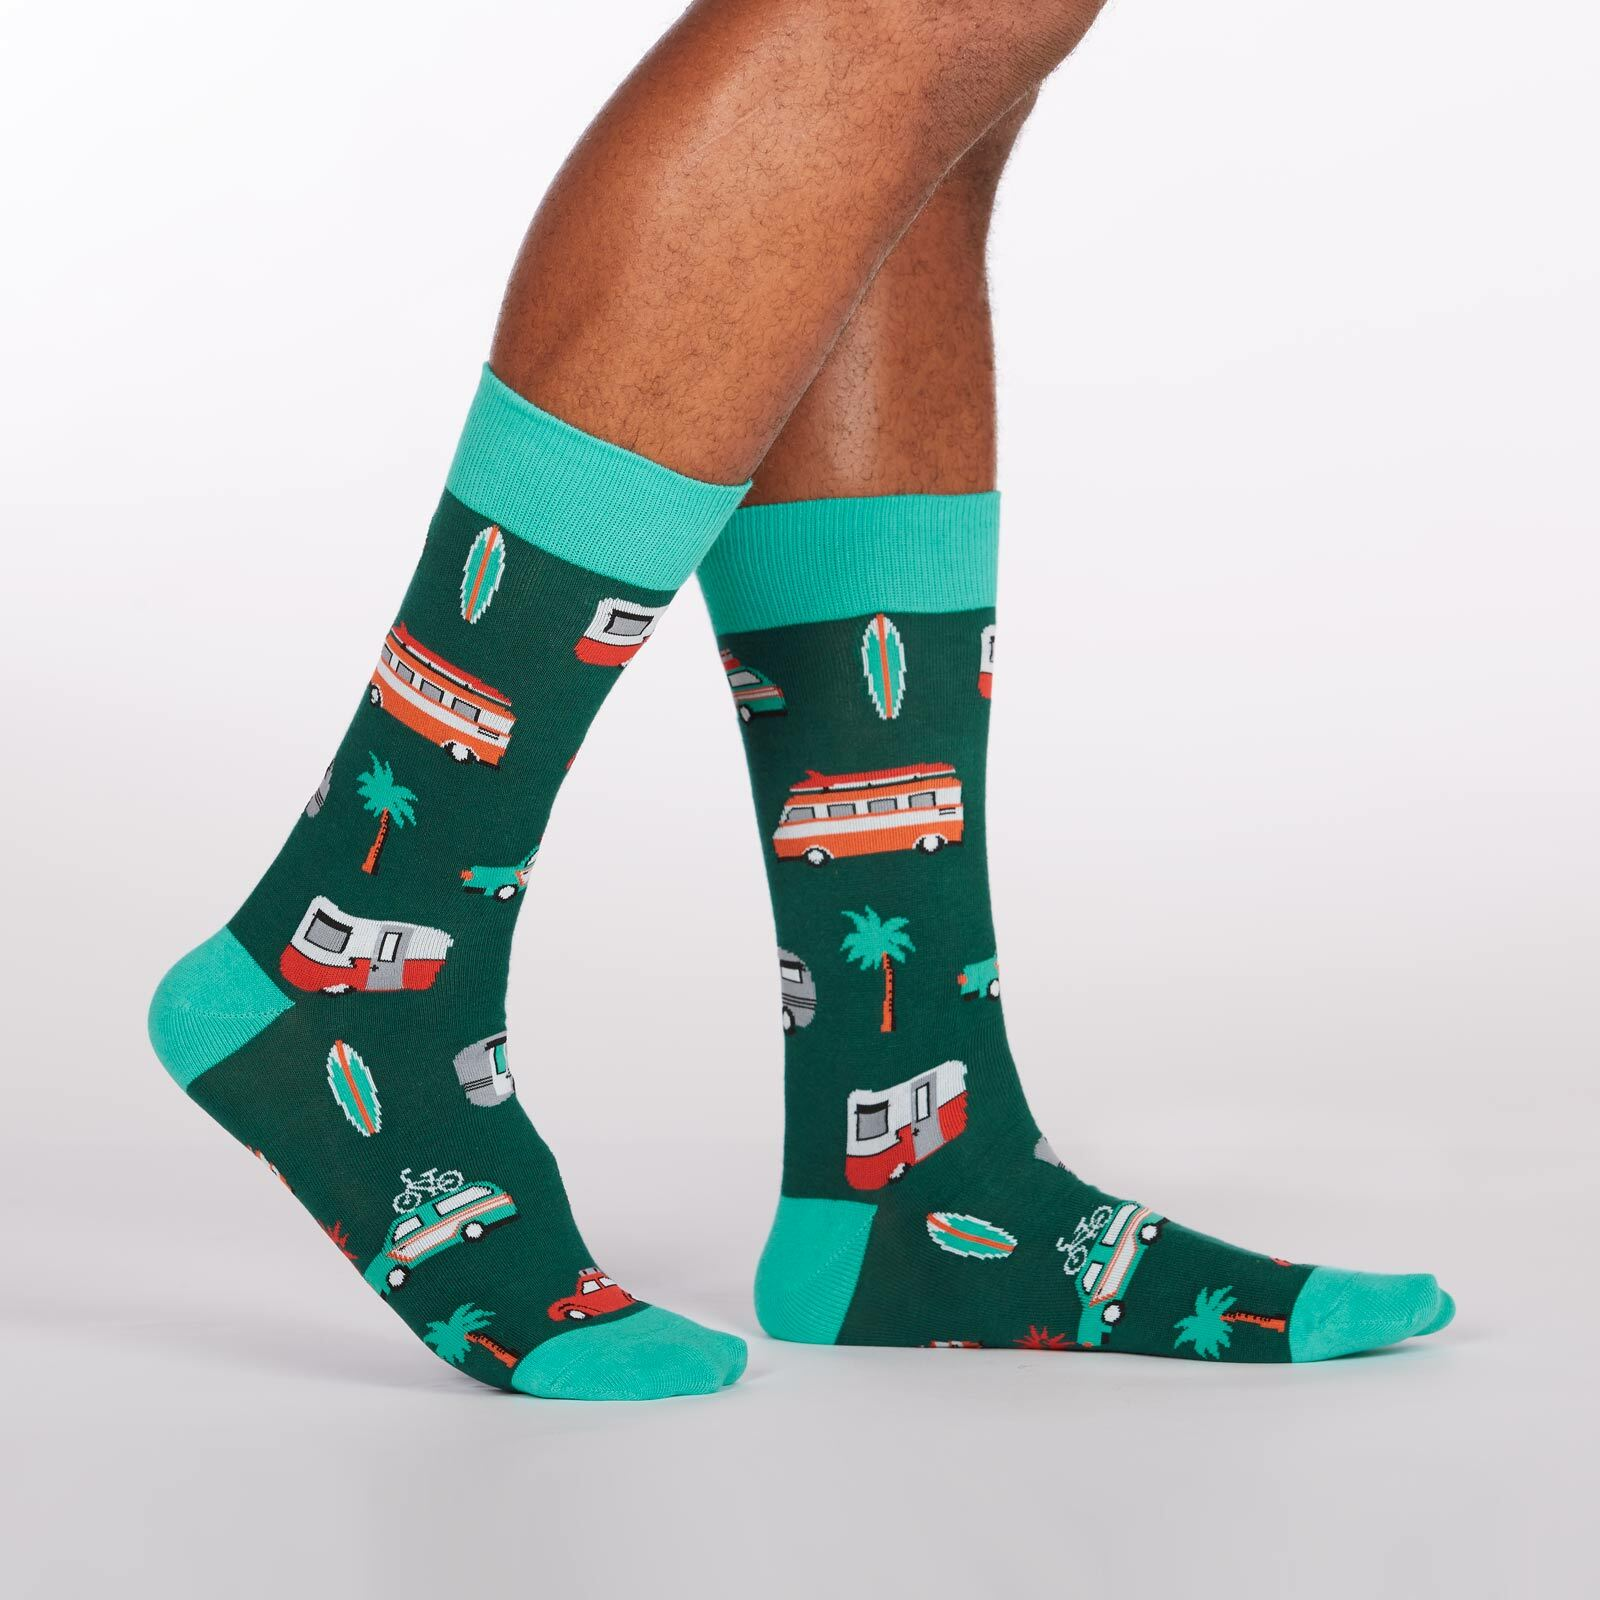 Day Tripper - Roadtrip Crew Socks Green - Men's in Green